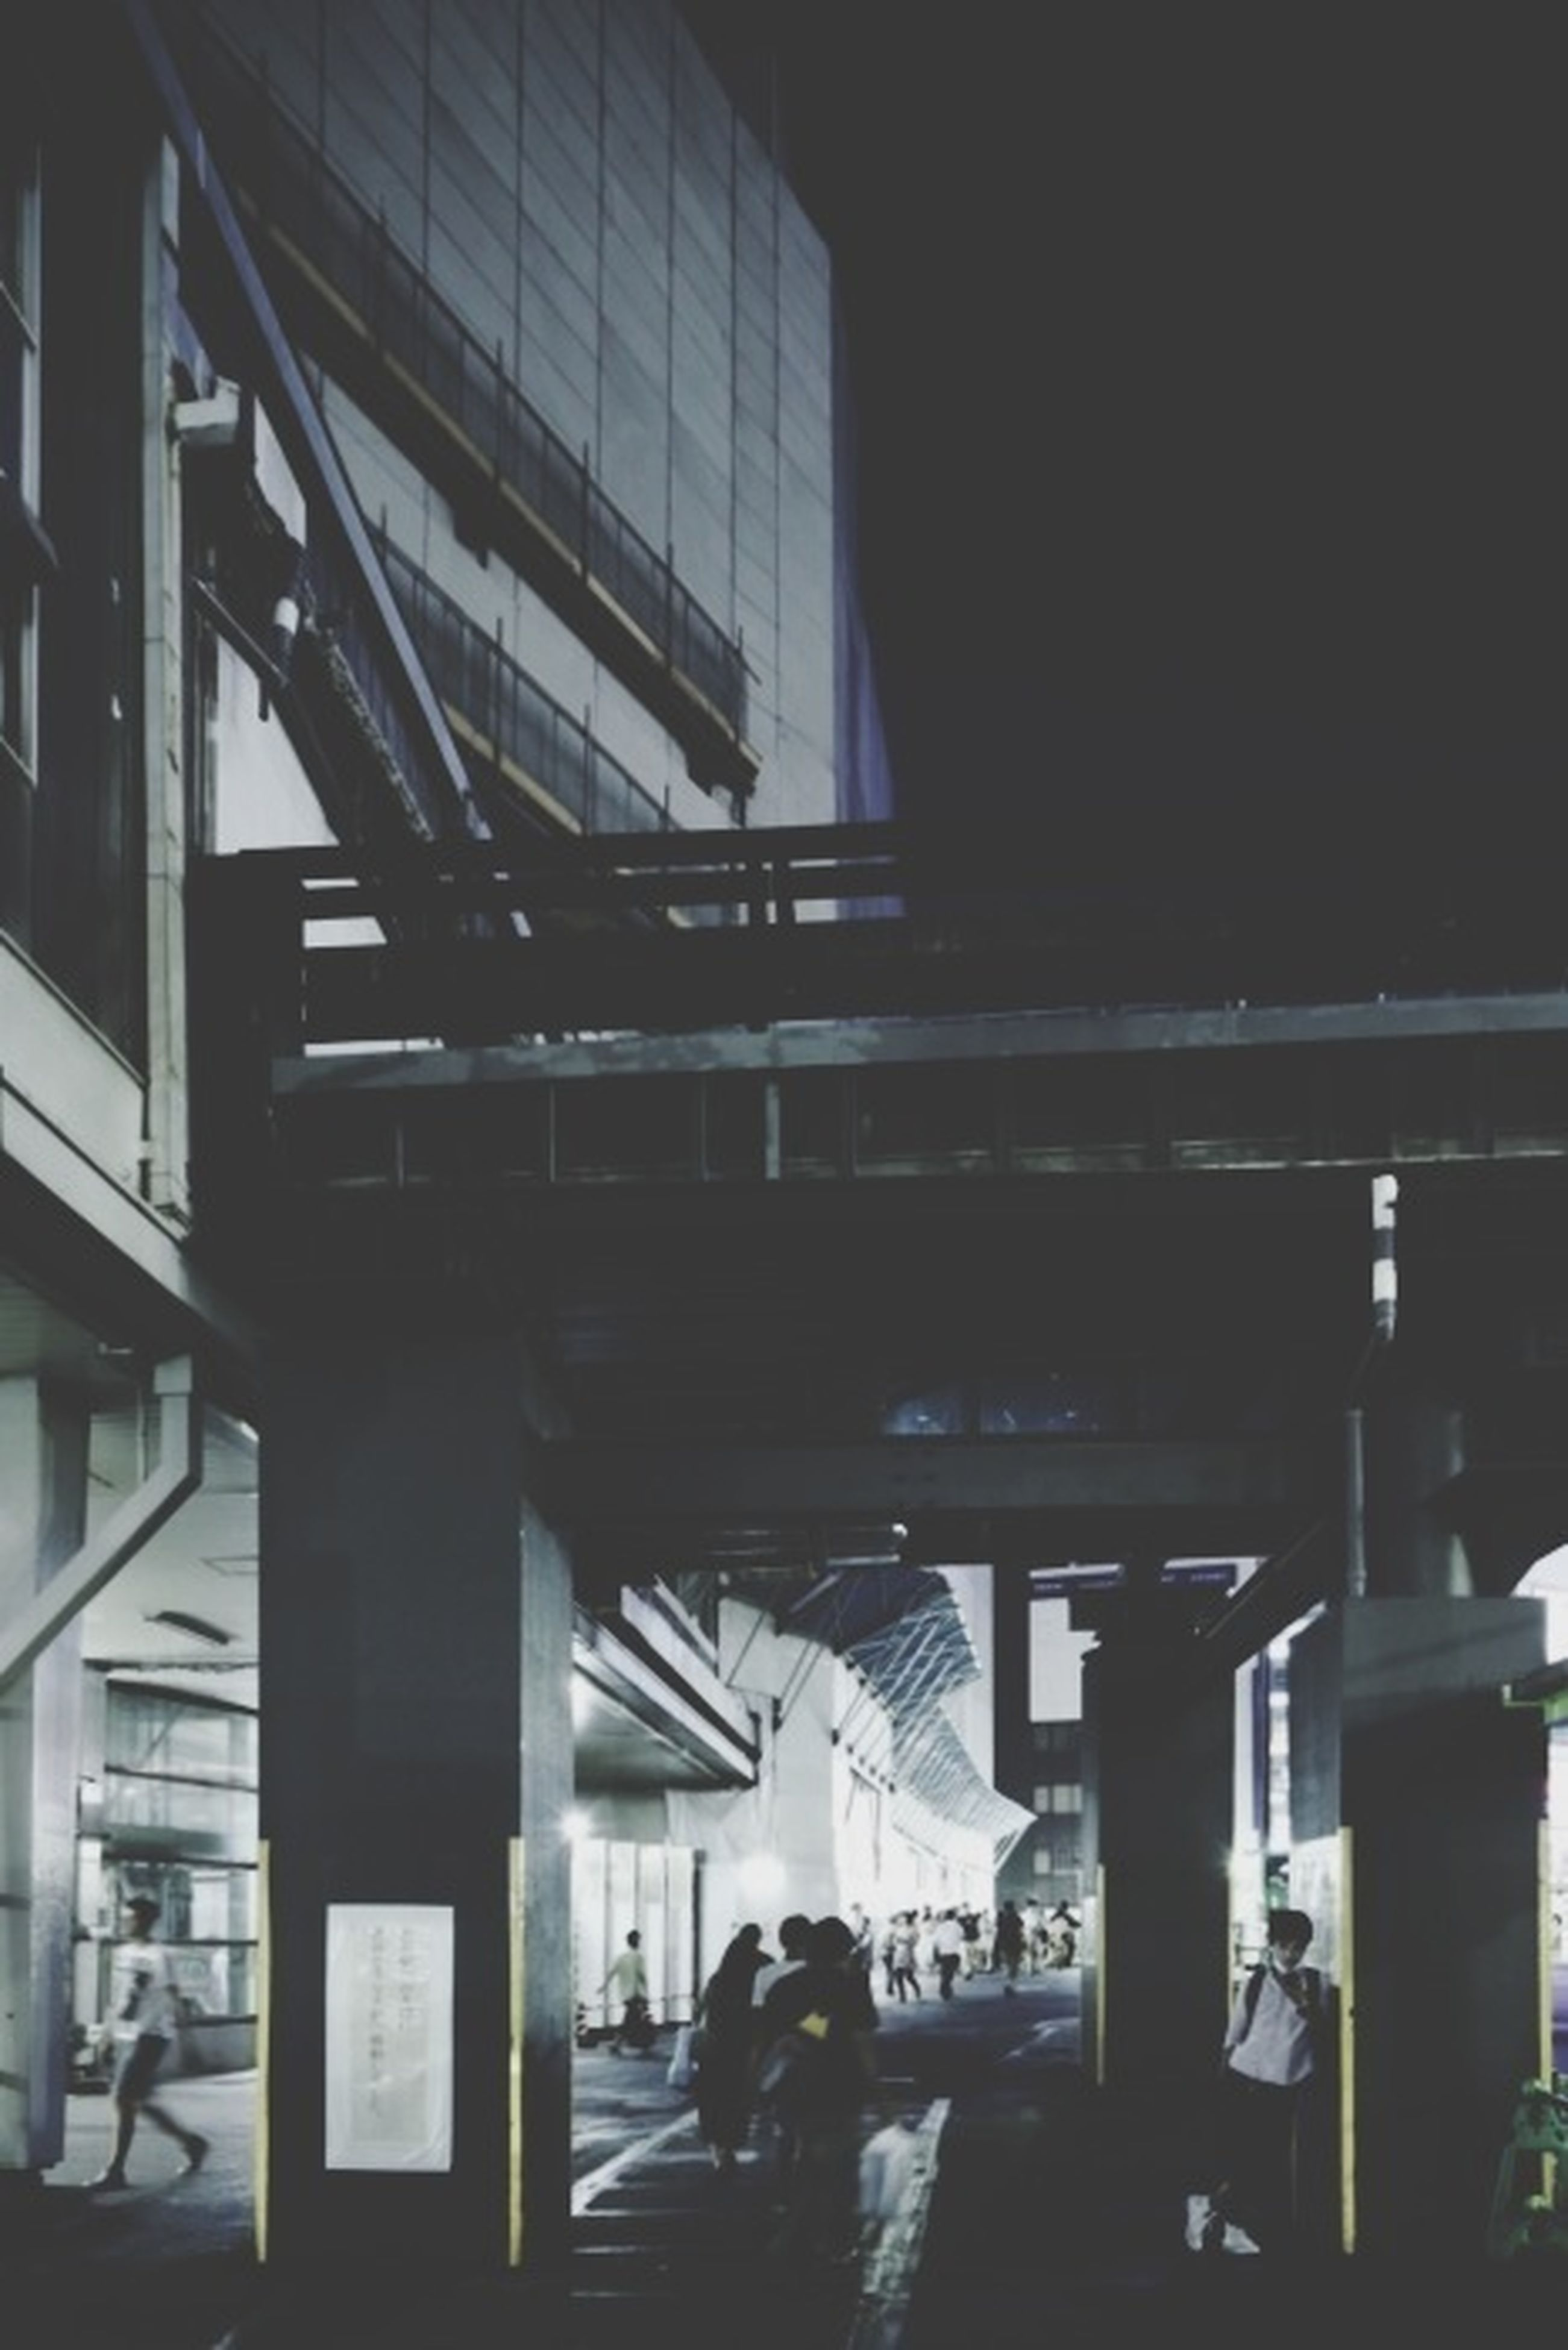 architecture, indoors, built structure, men, lifestyles, person, leisure activity, building exterior, architectural column, incidental people, walking, city life, transportation, city, group of people, ceiling, rear view, modern